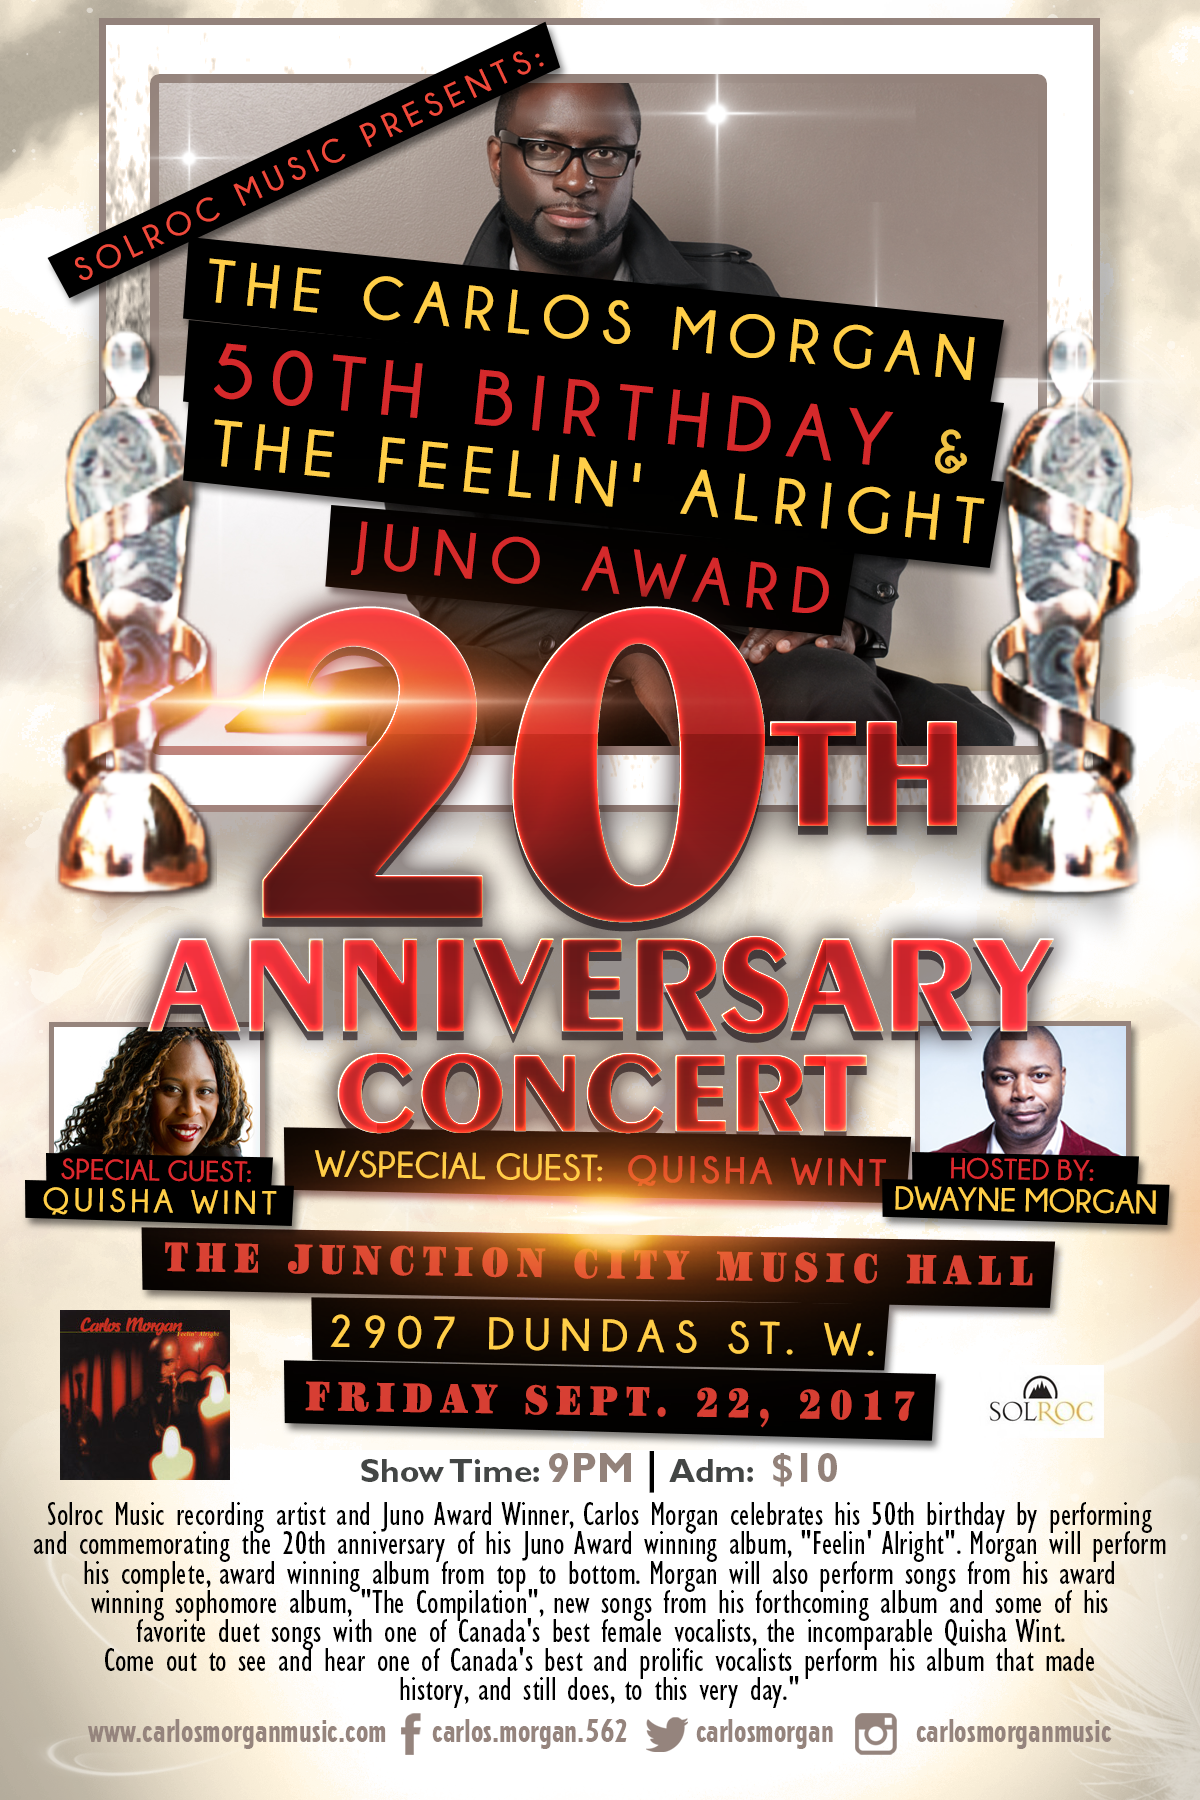 TheFeelinAlright&50thBirthdayConcertFlyer.png